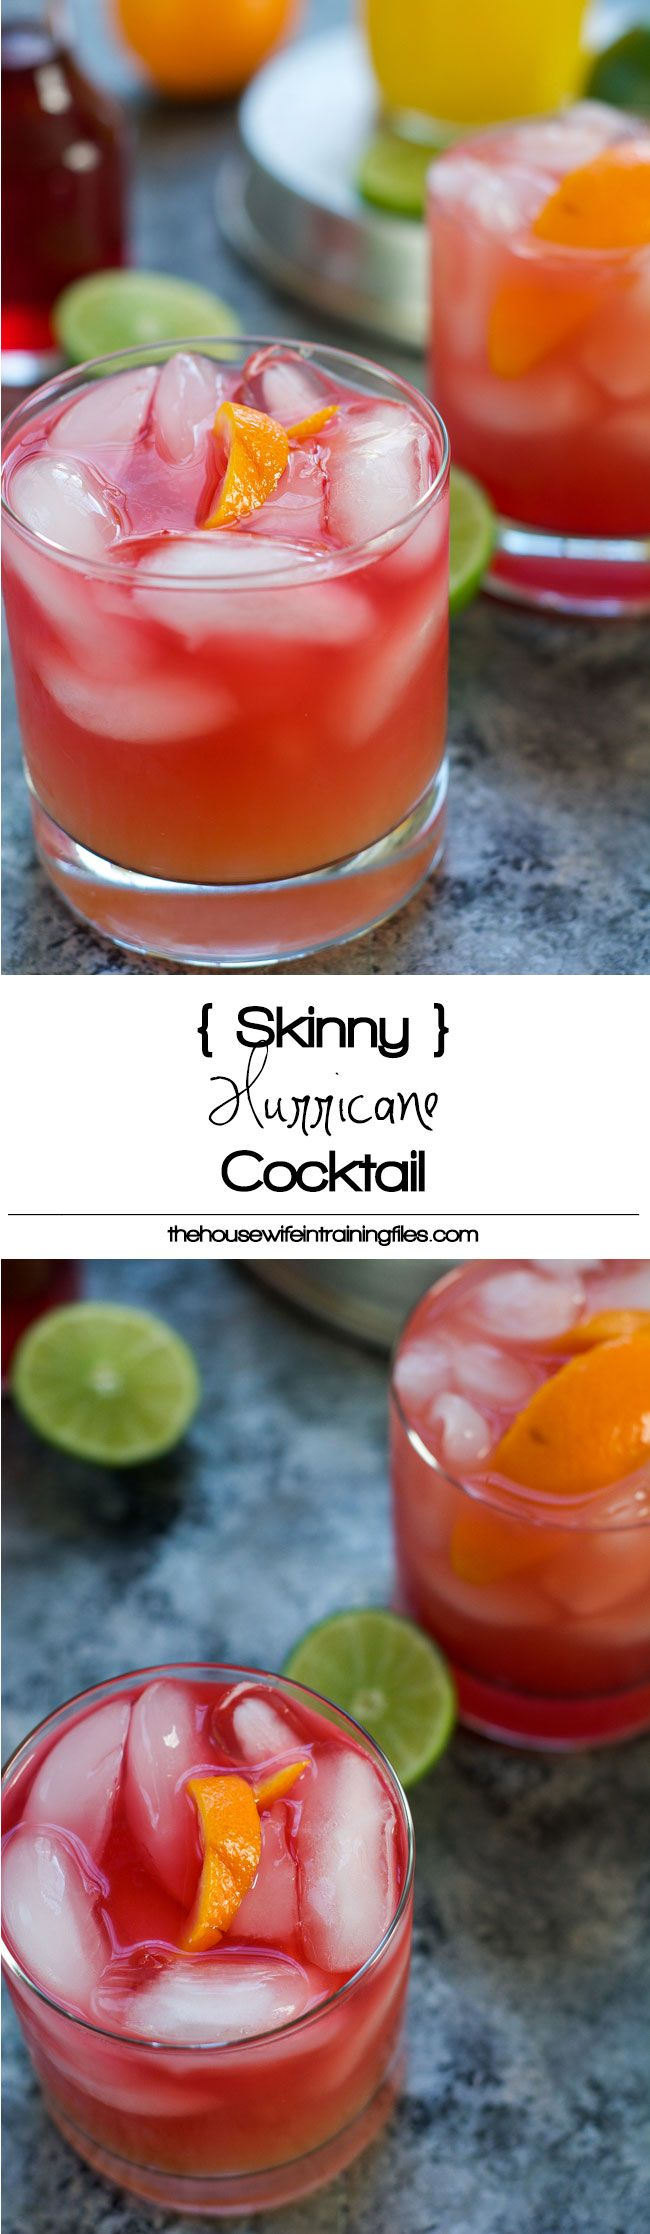 This Skinny Hurricane Cocktail is a healthier version of the classic Mardi Gras drink is filled with orange and cranberry juice and finished with light rum for a refreshing cocktail! #MardiGras #Skinny #Cocktail #Beverage #hurricanefoodideas